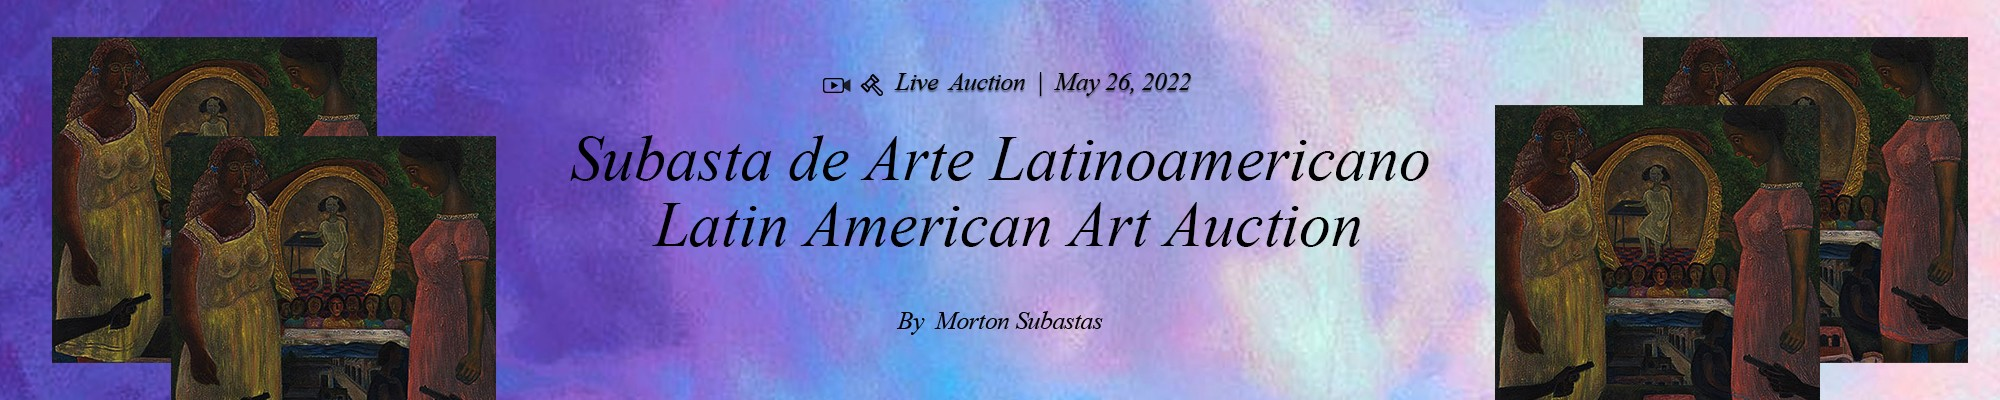 painting-drawing-and-sculpture-auction-morton-subastas